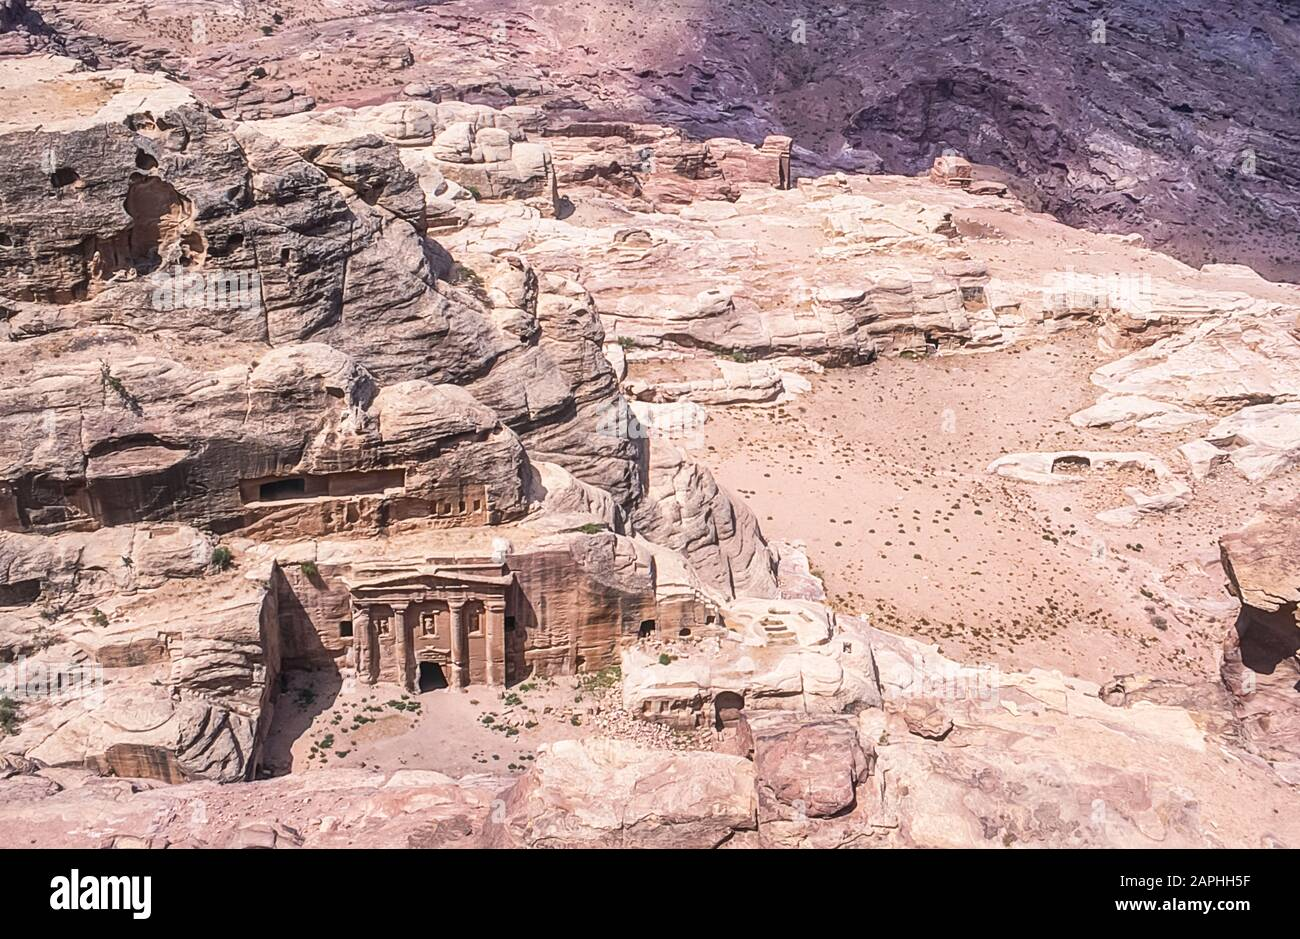 Jordan. Aerial view of the Roman Centurion burial temple at the World famous UNESCO World Heritage Site of the Nabatean and Roman ruins and relics at the desert town of Petra much used as a motion picture film set such as Indiana Jones Temple of Doom, now a very popular tourist attraction Stock Photo